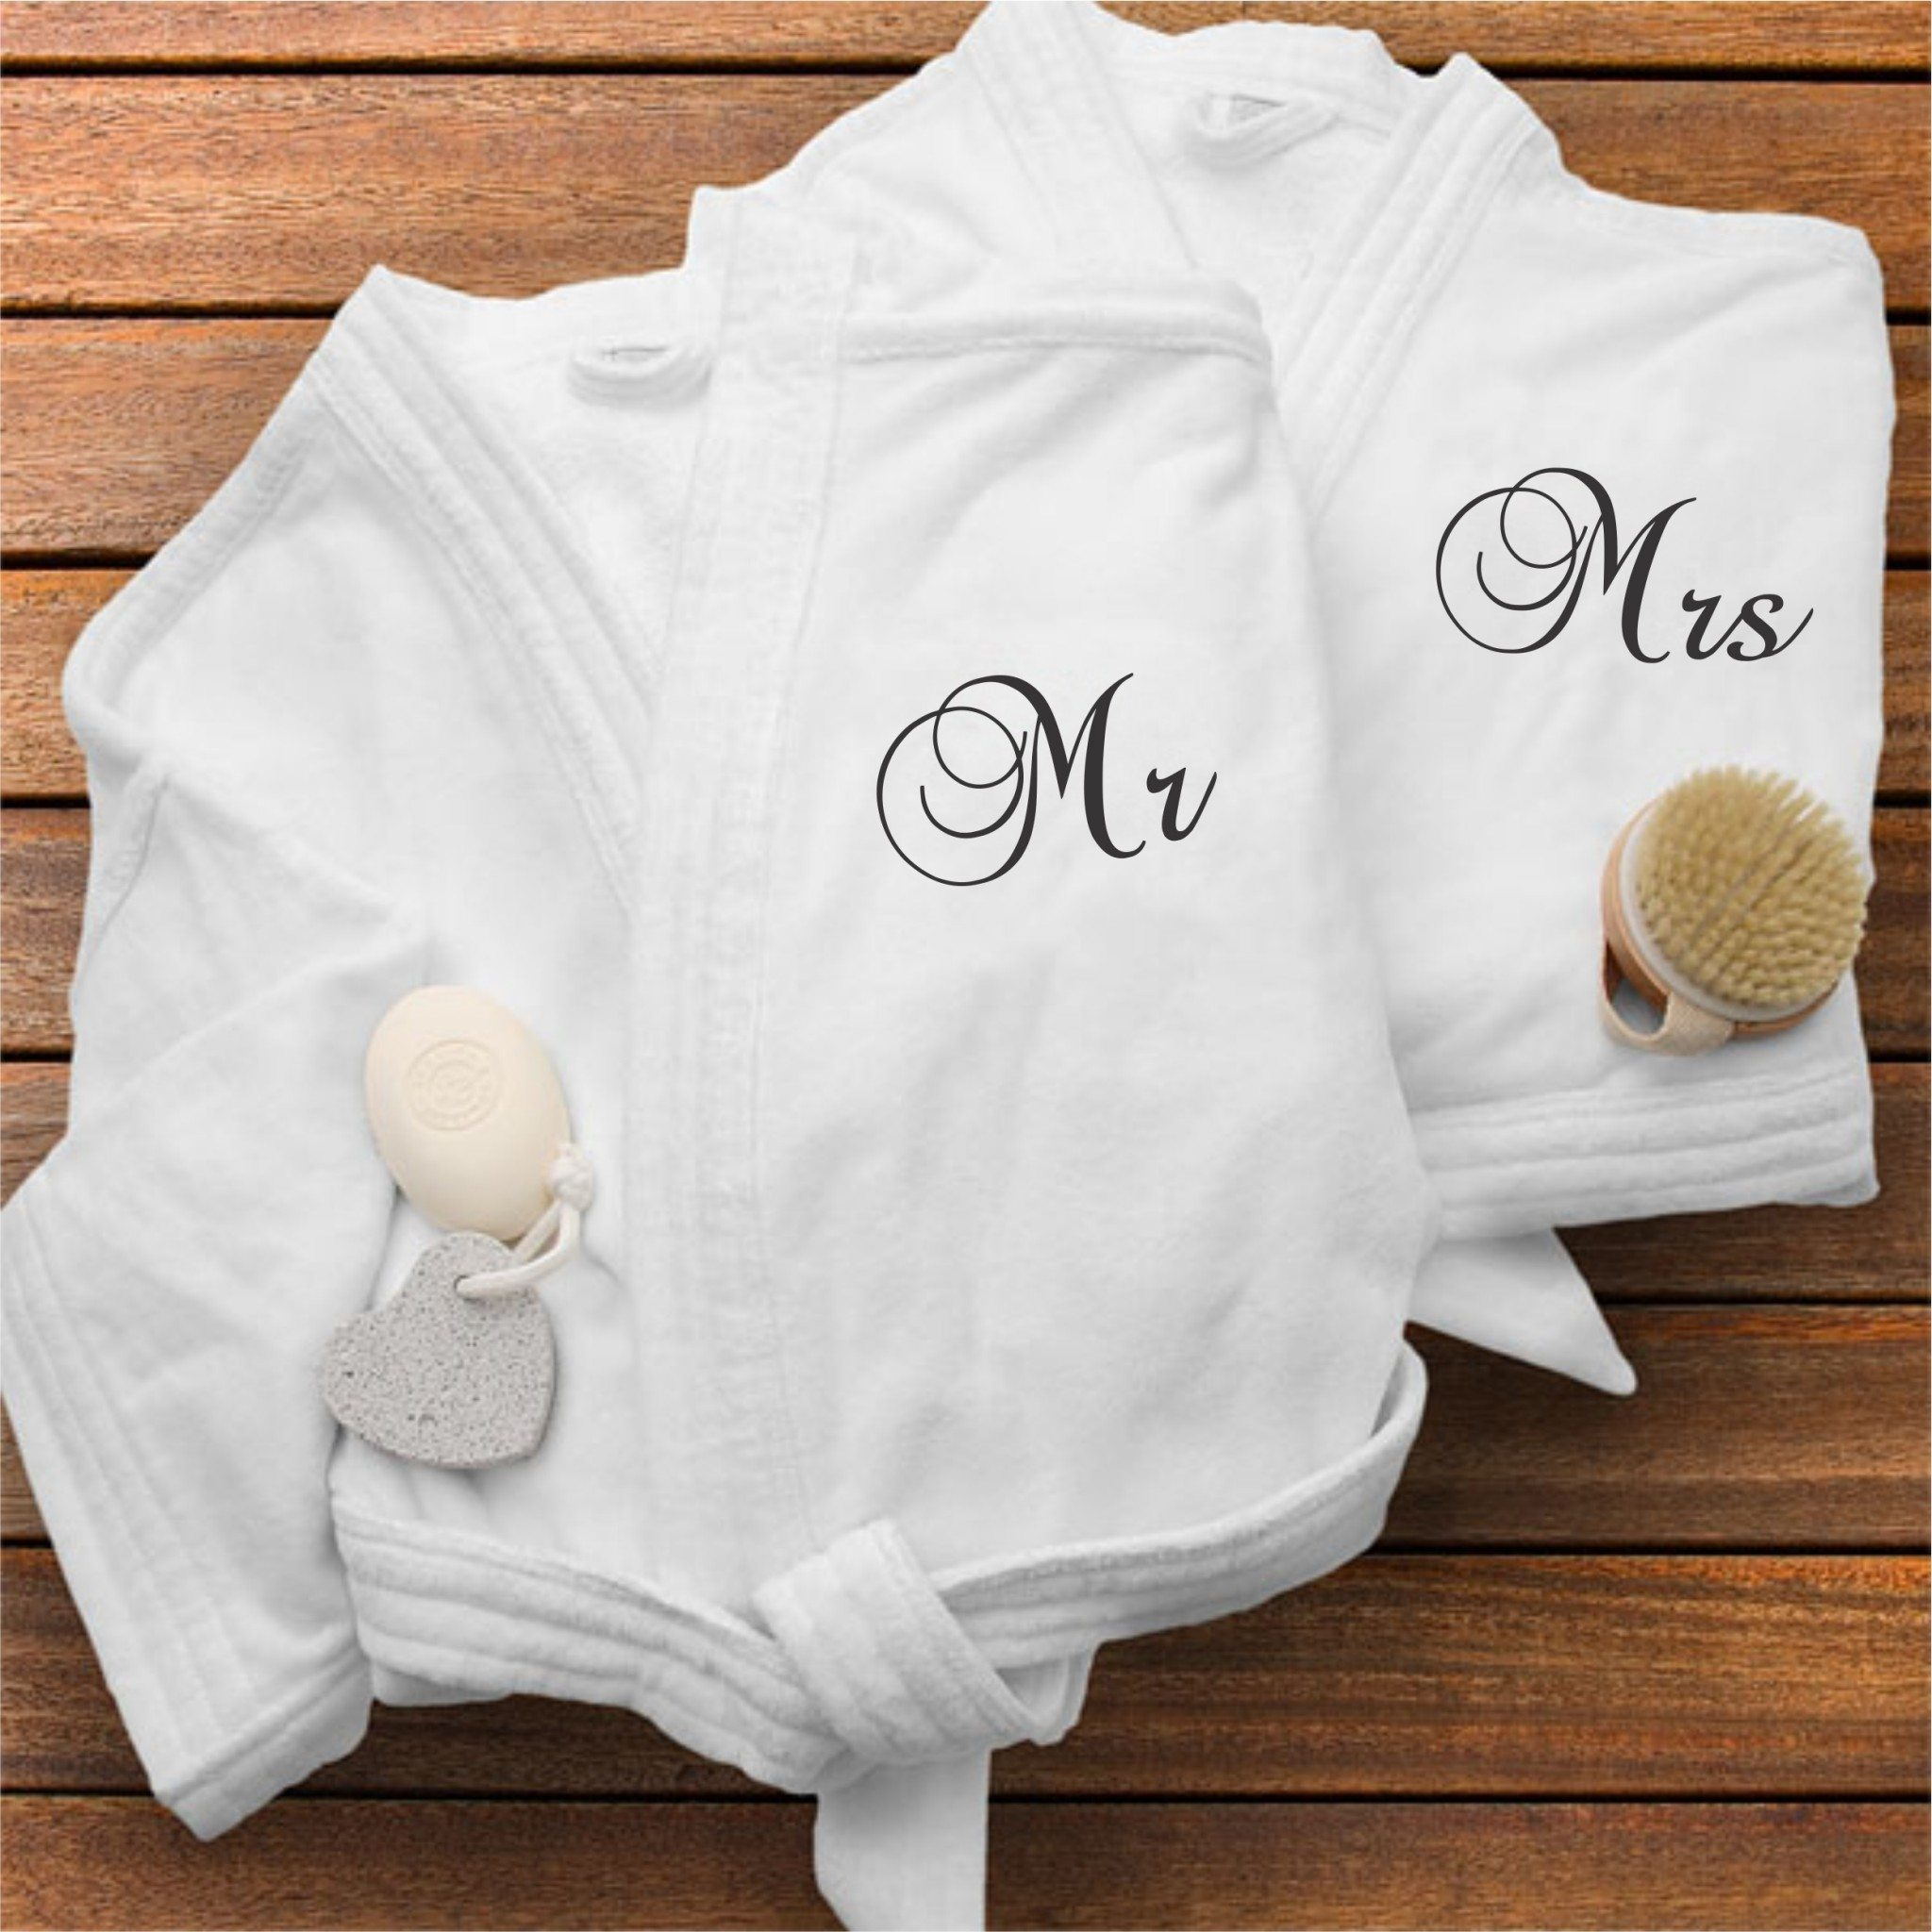 Best Personalized Gifts Dubai